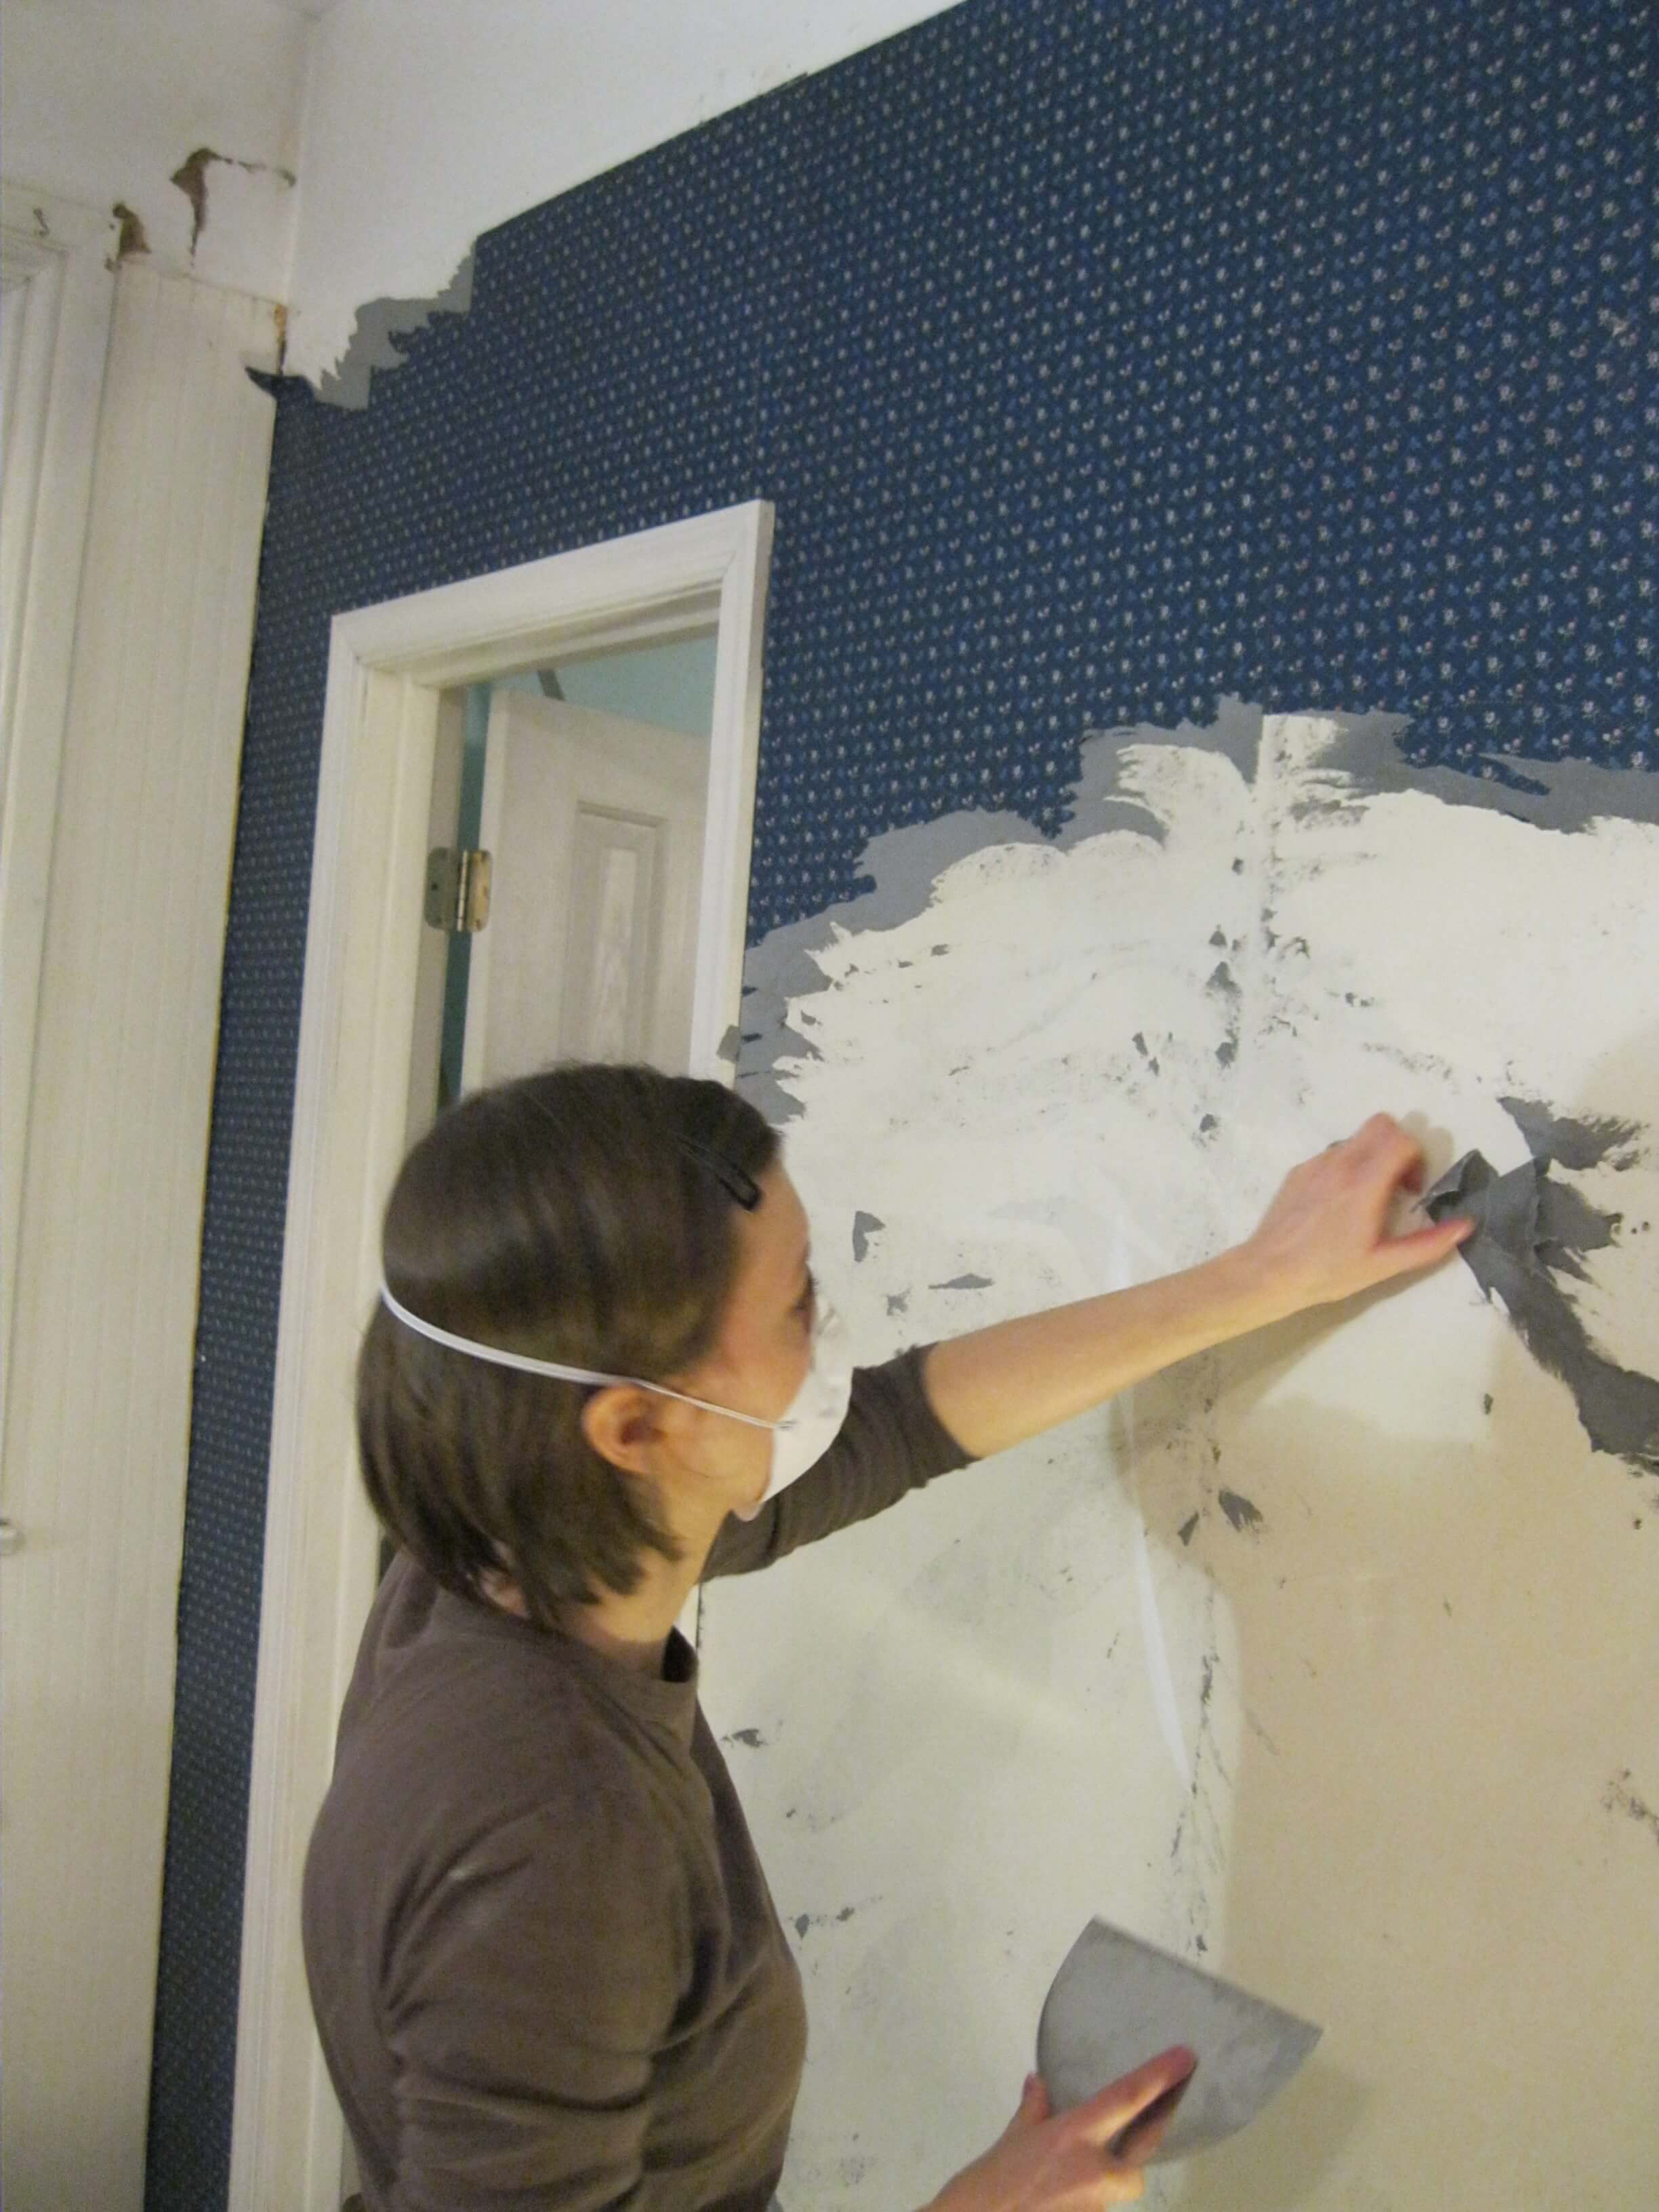 Removing Wall Paper